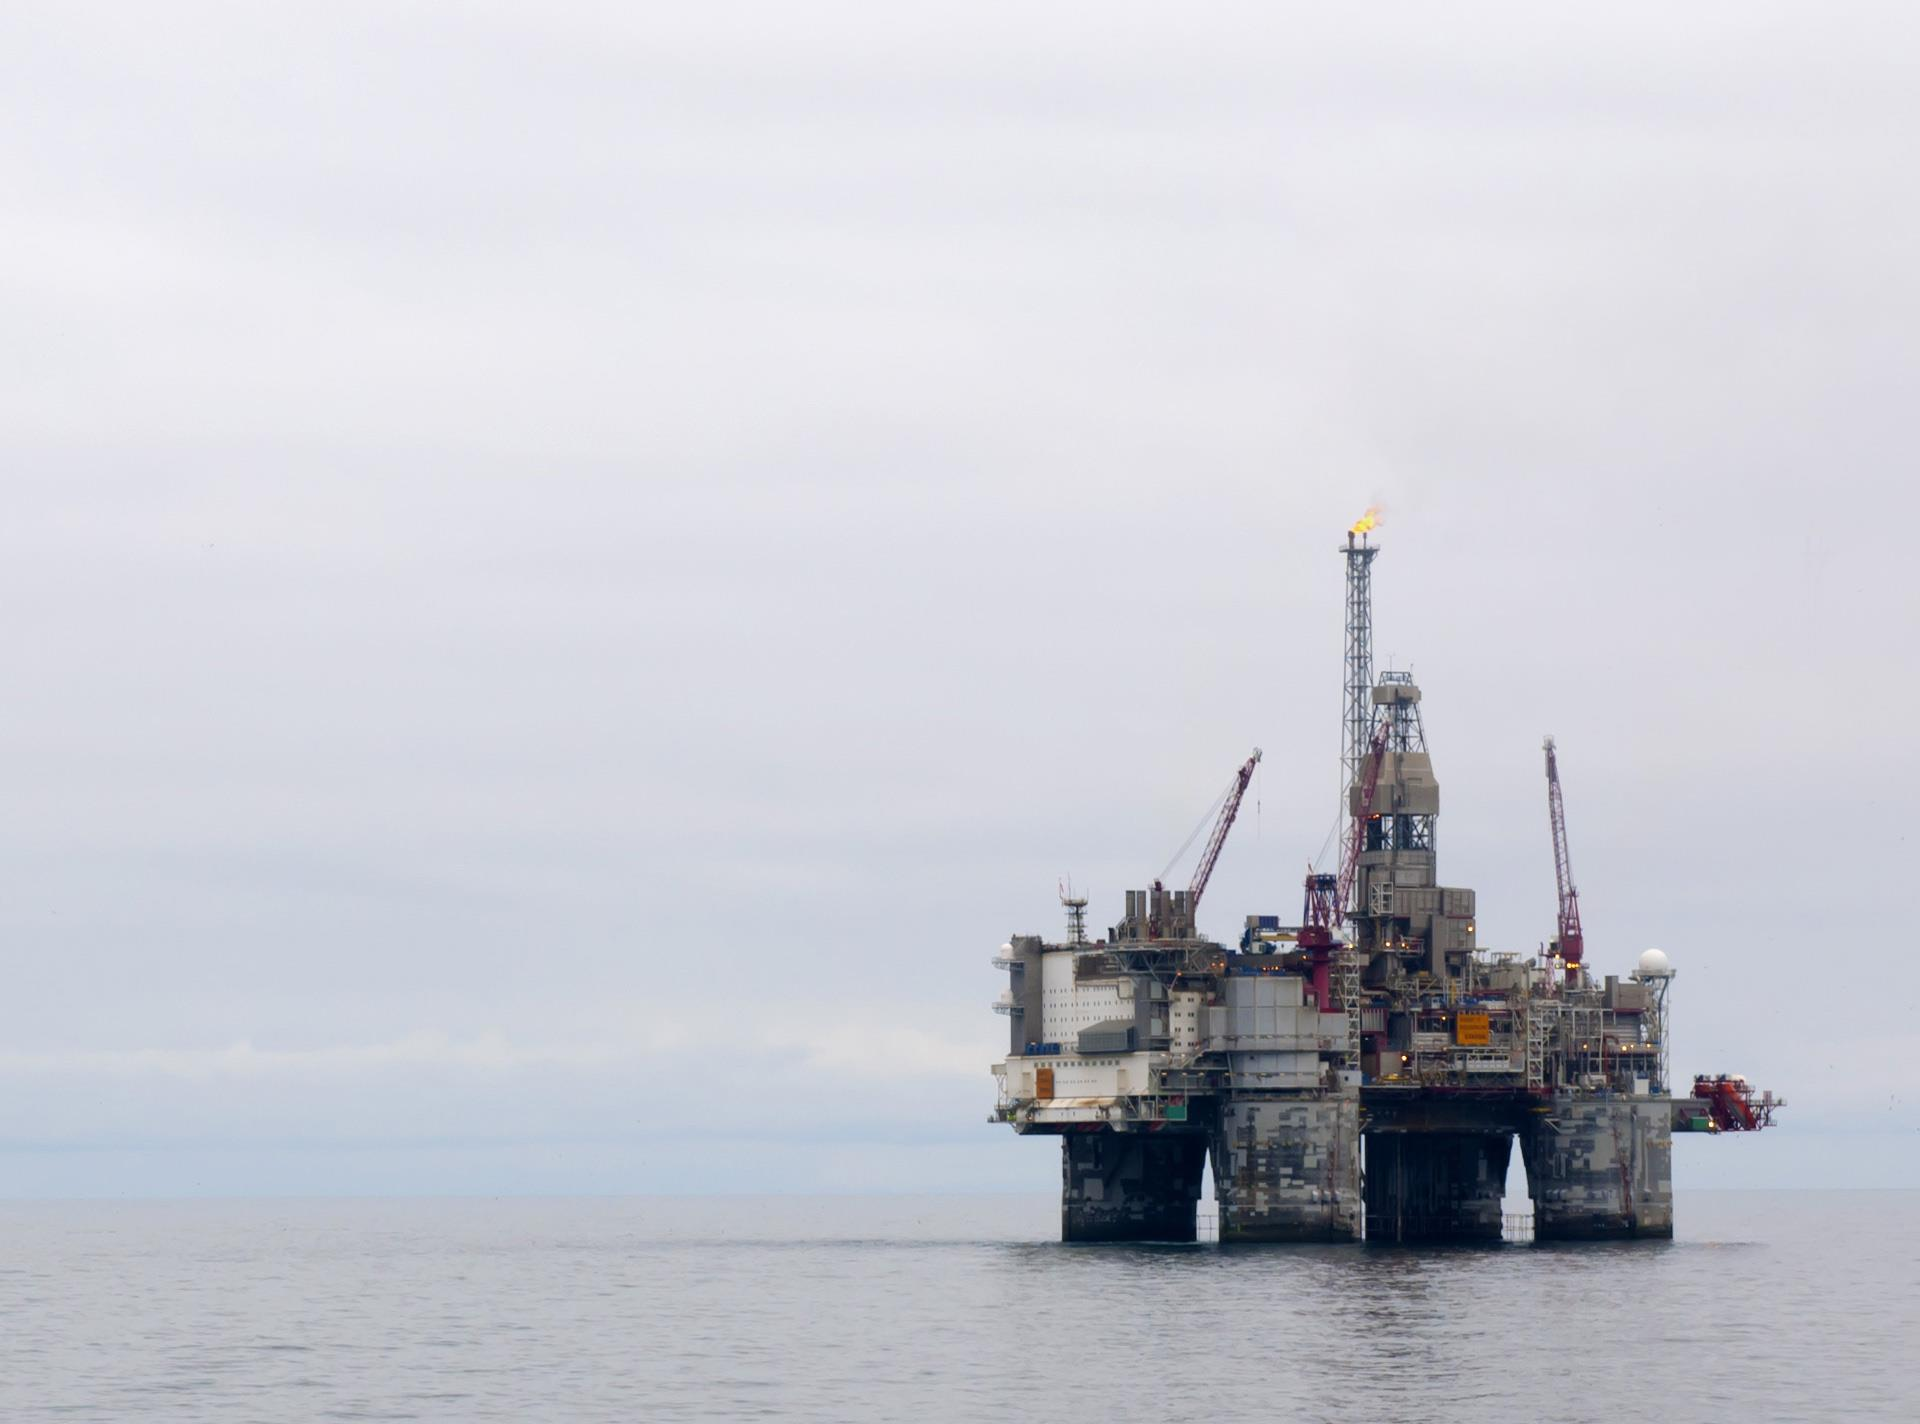 Offshore rig on an overcast day